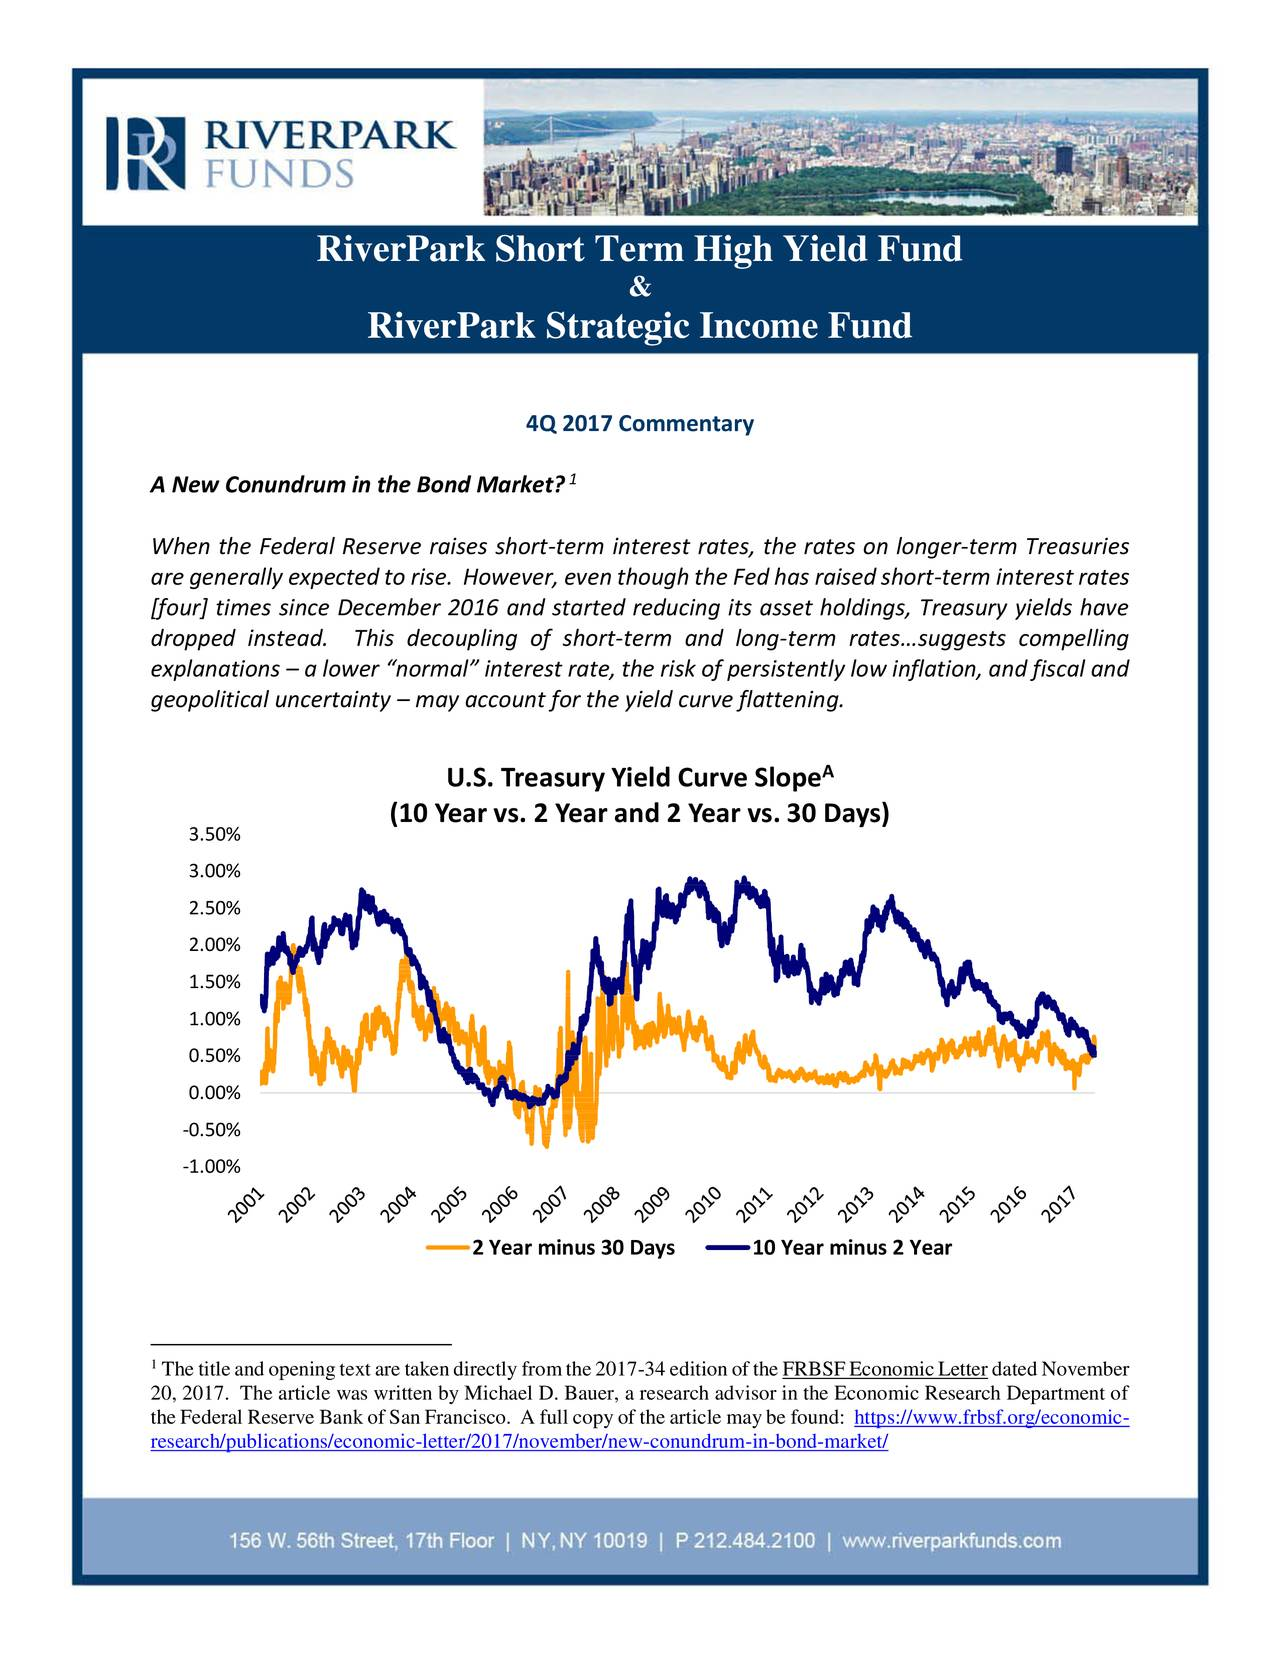 """& RiverPark Strategic Income Fund 4Q 2017 Commentary 1 A New Conundrum in the Bond Market? When the Federal Reserve raises short-term interest rates, the rates on longer-term Treasuries aregenerally expectedtorise. However,eventhoughthe Fedhas raisedshort-terminterestrates [four] times since December 2016 and started reducing its asset holdings, Treasury yields have dropped instead. This decoupling of short-term and long-term rates…suggests compelling explanations – a lower """"normal"""" interest rate, the risk of persistently low inflation, and fiscal and geopolitical uncertainty – may account for the yield curve flattening. A U.S. Treasury Yield Curve Slope (10 Year vs. 2 Year and 2 Year vs. 30 Days) 3.50% 3.00% 2.50% 2.00% 1.50% 1.00% 0.50% 0.00% -0.50% -1.00% 2 Year minus 30 Days 10 Year minus 2 Year 1 The title and opening text are taken directly fromthe 2017-34 edition of the FRBSF Economic Letter dated November 20, 2017. The article was written by Michael D. Bauer, a research advisor in the Economic Research Department of the Federal Reserve Bank of San Francisco. A full copy of the article may be found: https://www.frbsf.org/economic- research/publications/economic-letter/2017/november/new-conundrum-in-bond-market/"""